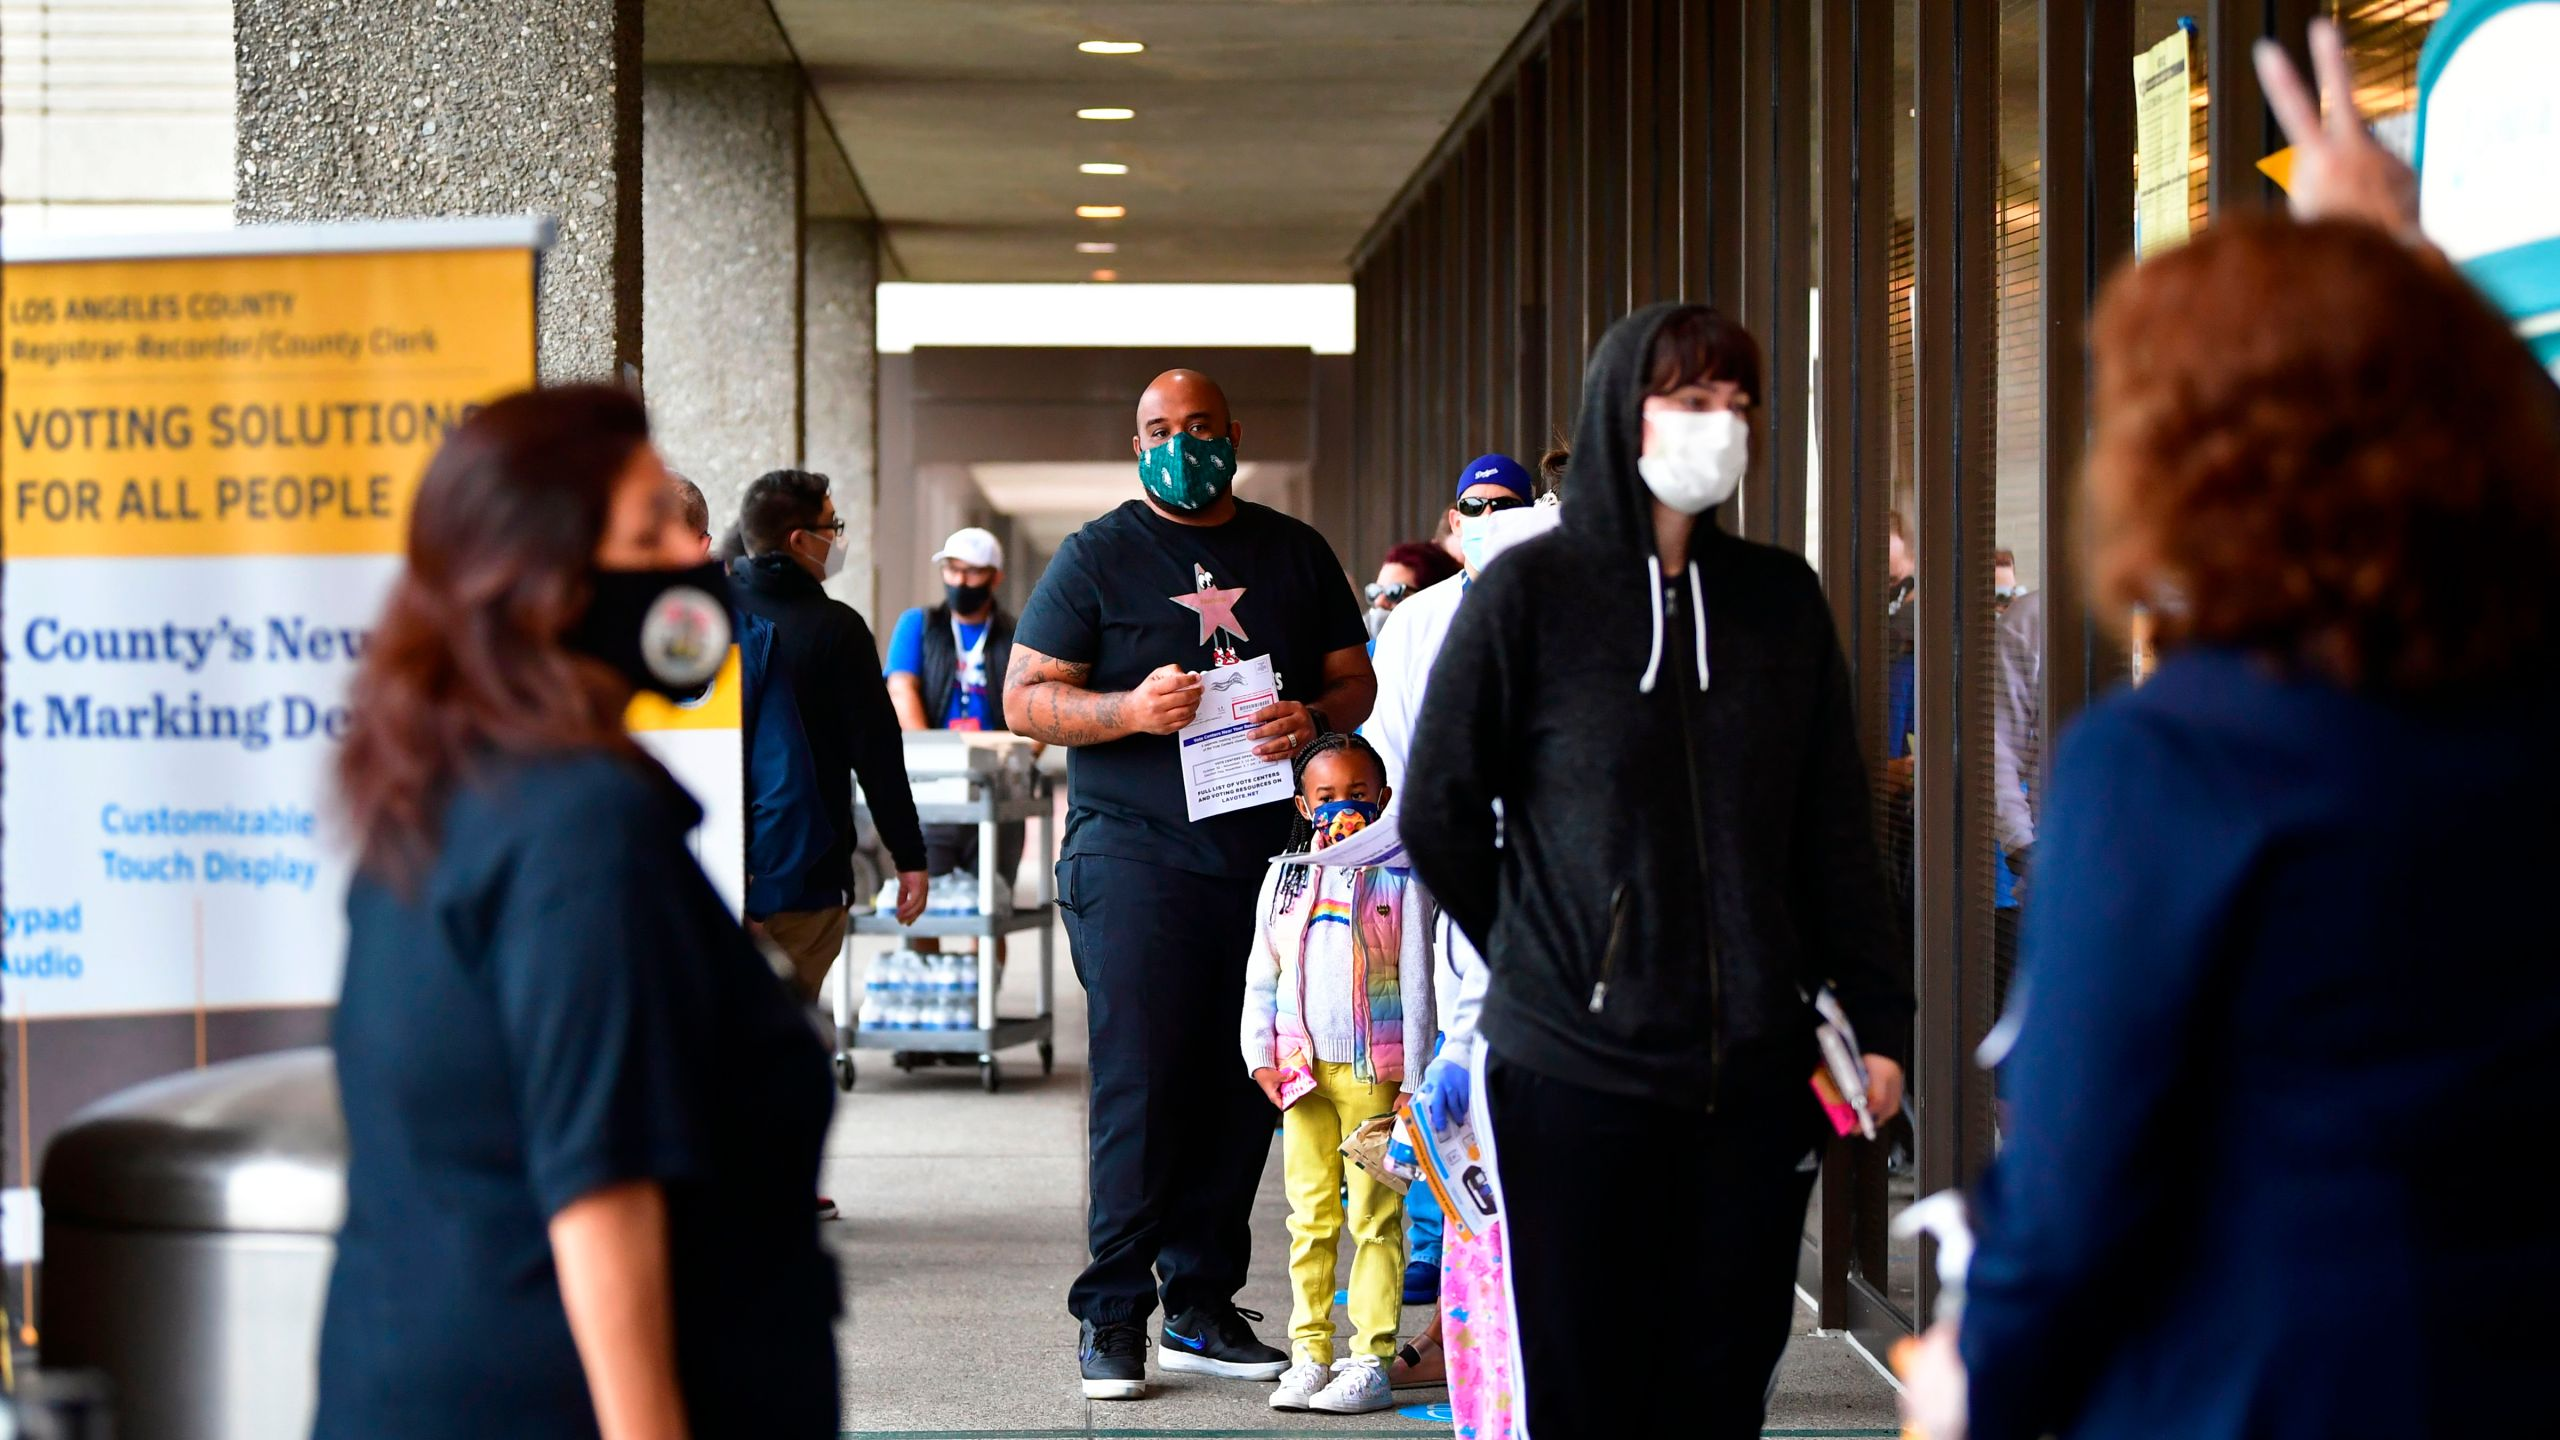 Voters wear face-coverings while waiting in line to vote for the 2020 US elections at the Los Angeles County Registrar in Norwalk on Nov. 3, 2020. (Frederic J. Brown / AFP / Getty Images)